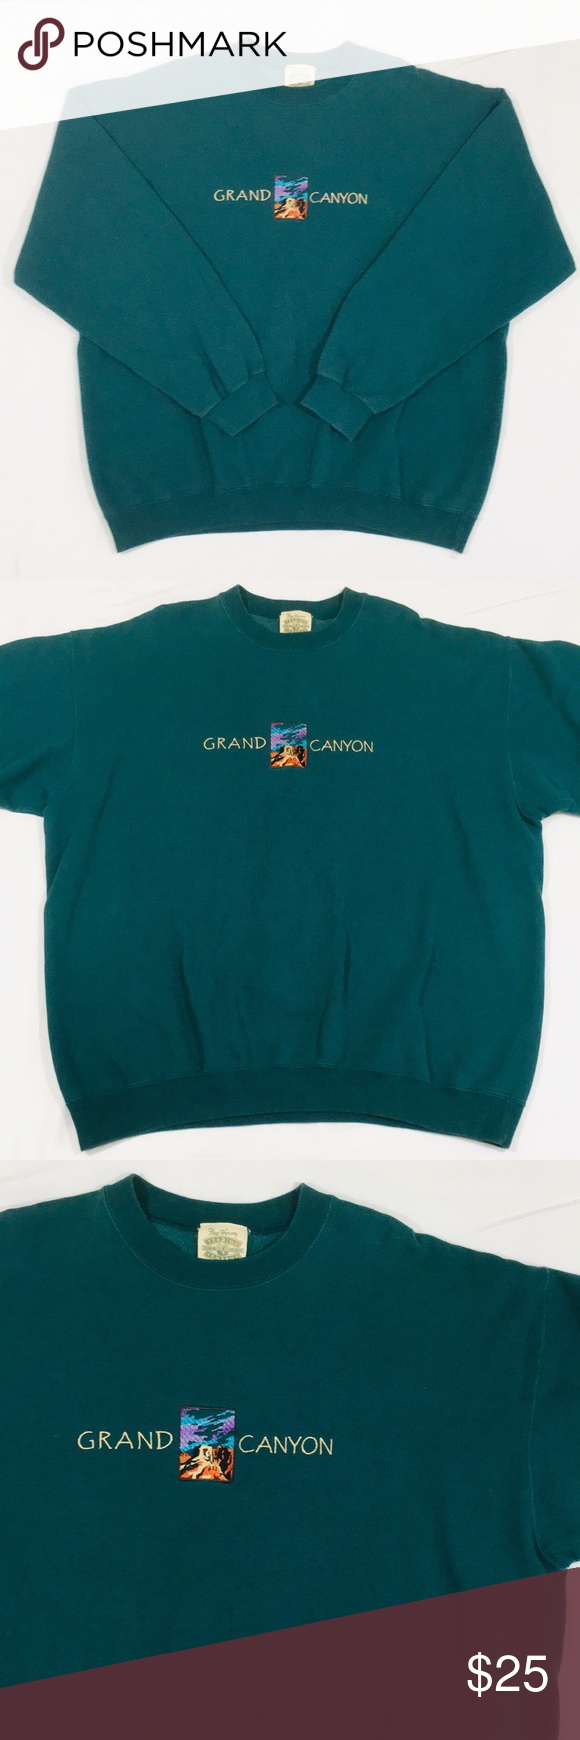 Fred Harvey Trading Company : harvey, trading, company, Vintage, Embroidered, Grand, Canyon, Crewneck, Sweater, Sweater,, Sweaters,